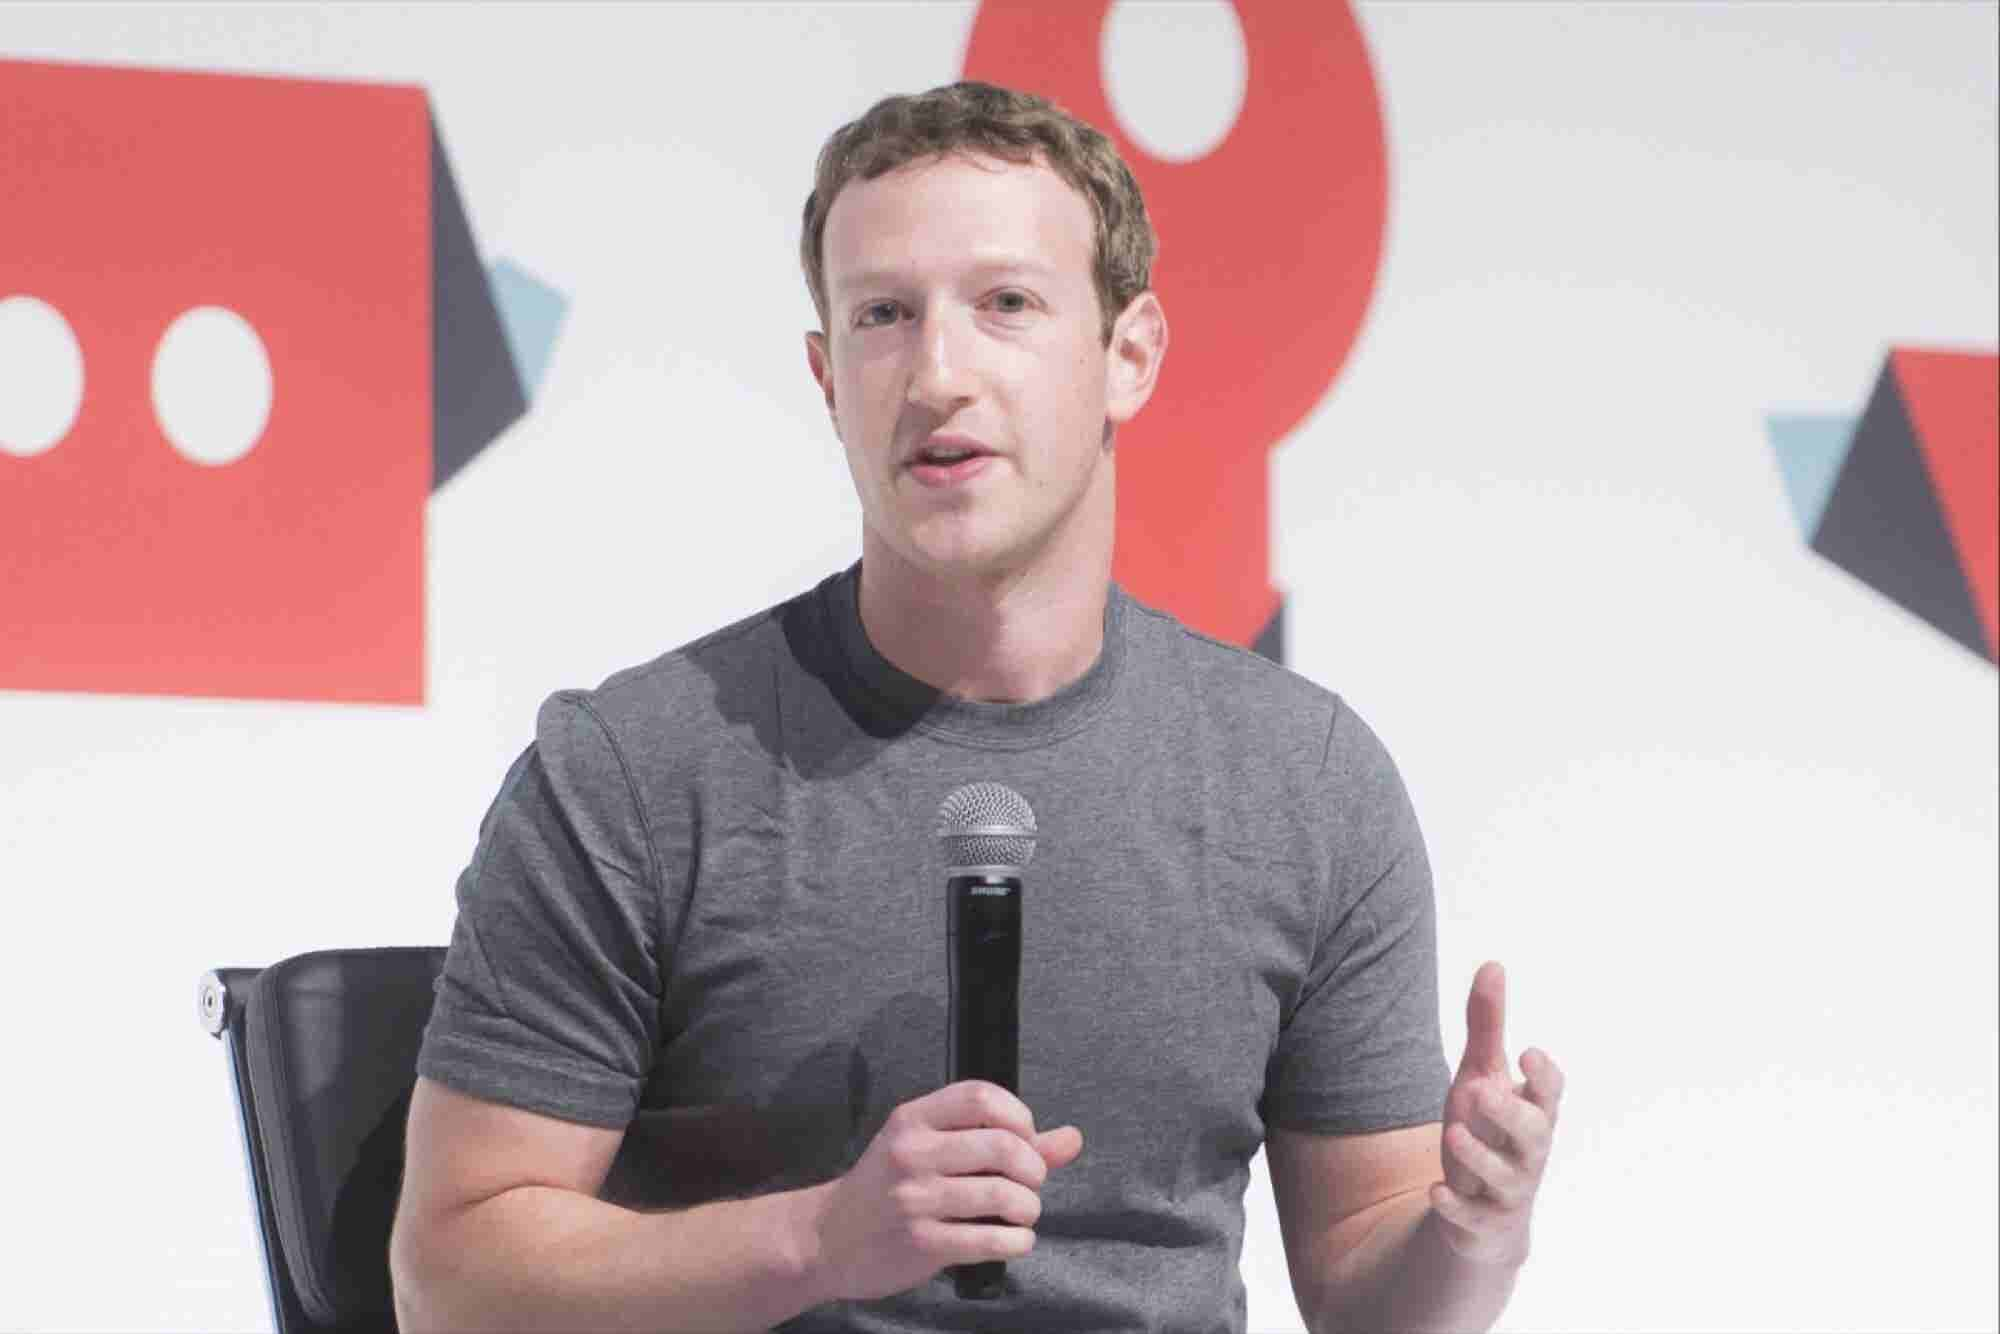 4 Things We Learned From Mark Zuckerberg's Monday Live Talk